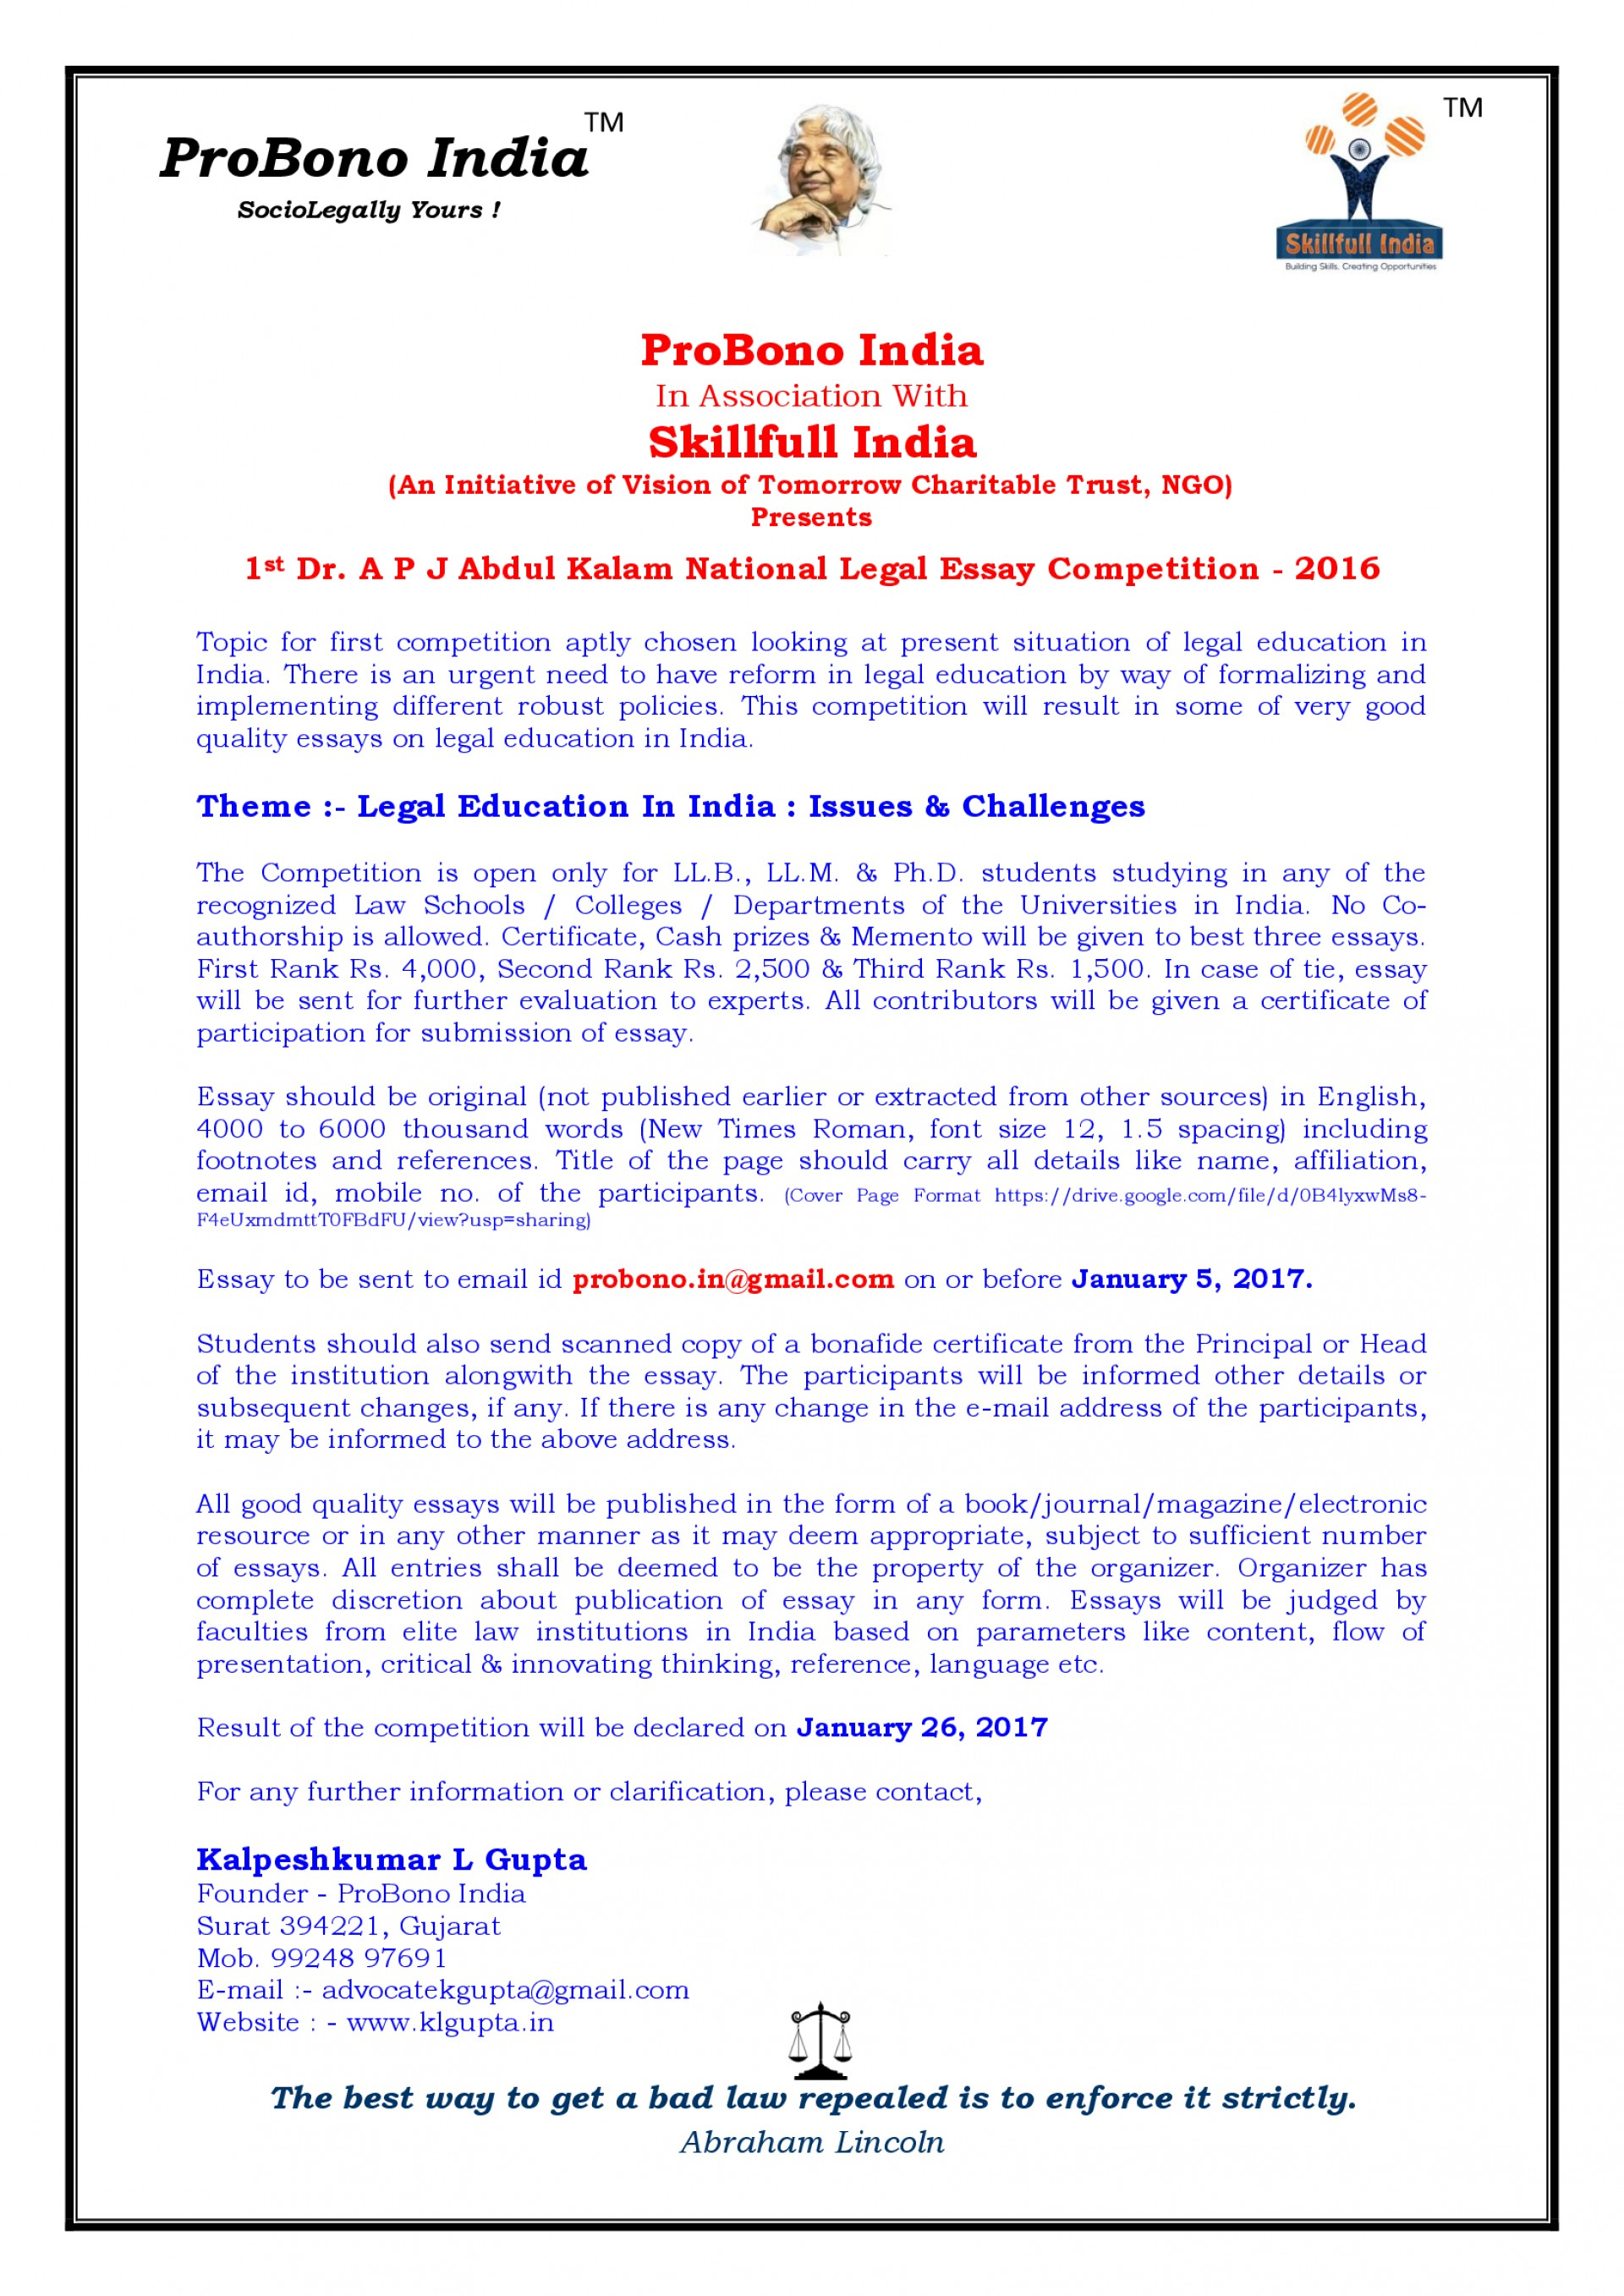 012 Essay Example Font Size 1st Dr P J Abdul Kalam National Level Competition With Skillfull Stunning Formal Apa 1920